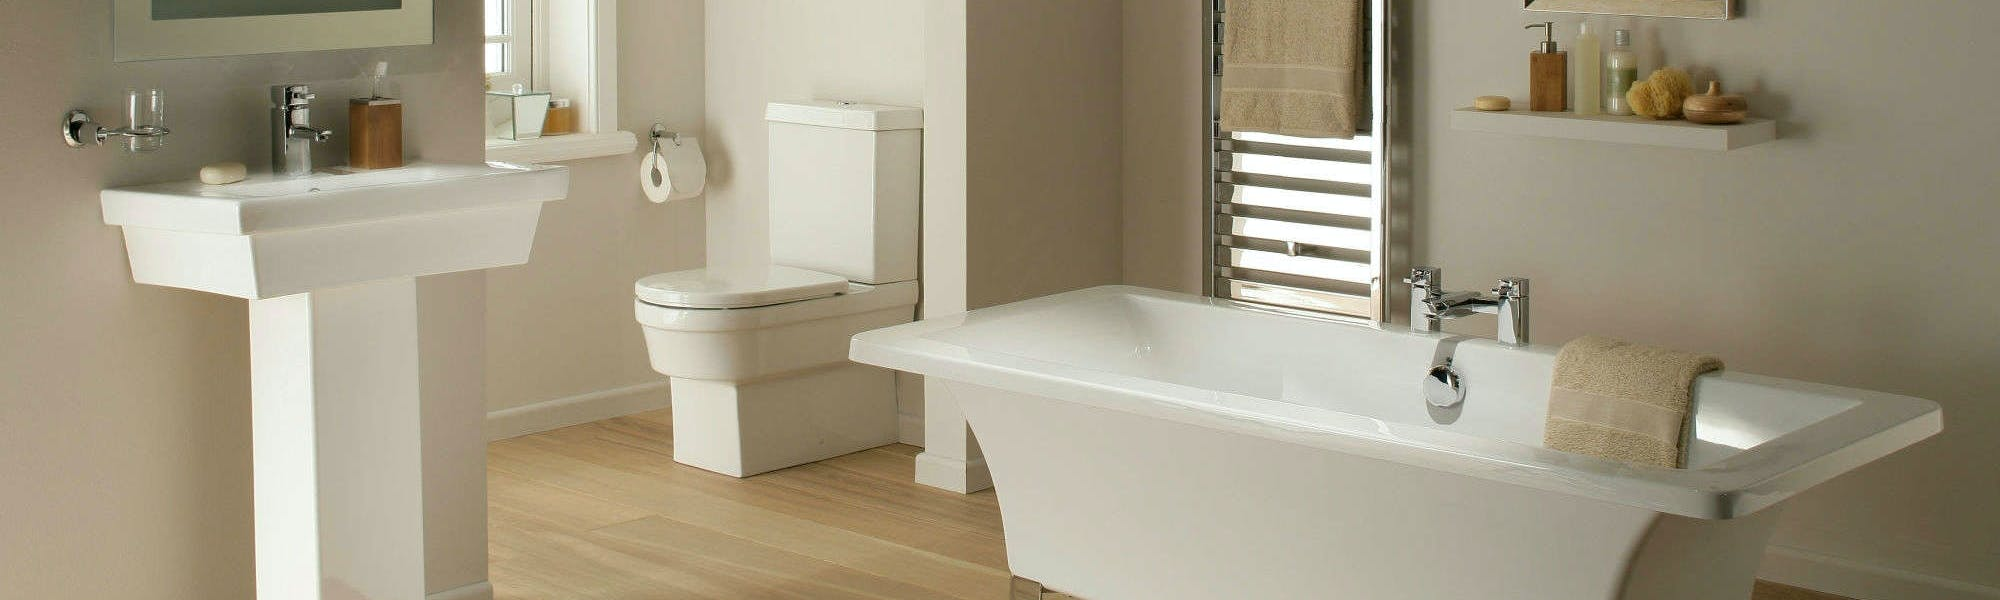 More Bathrooms - bathrooms designed, supplied & installed